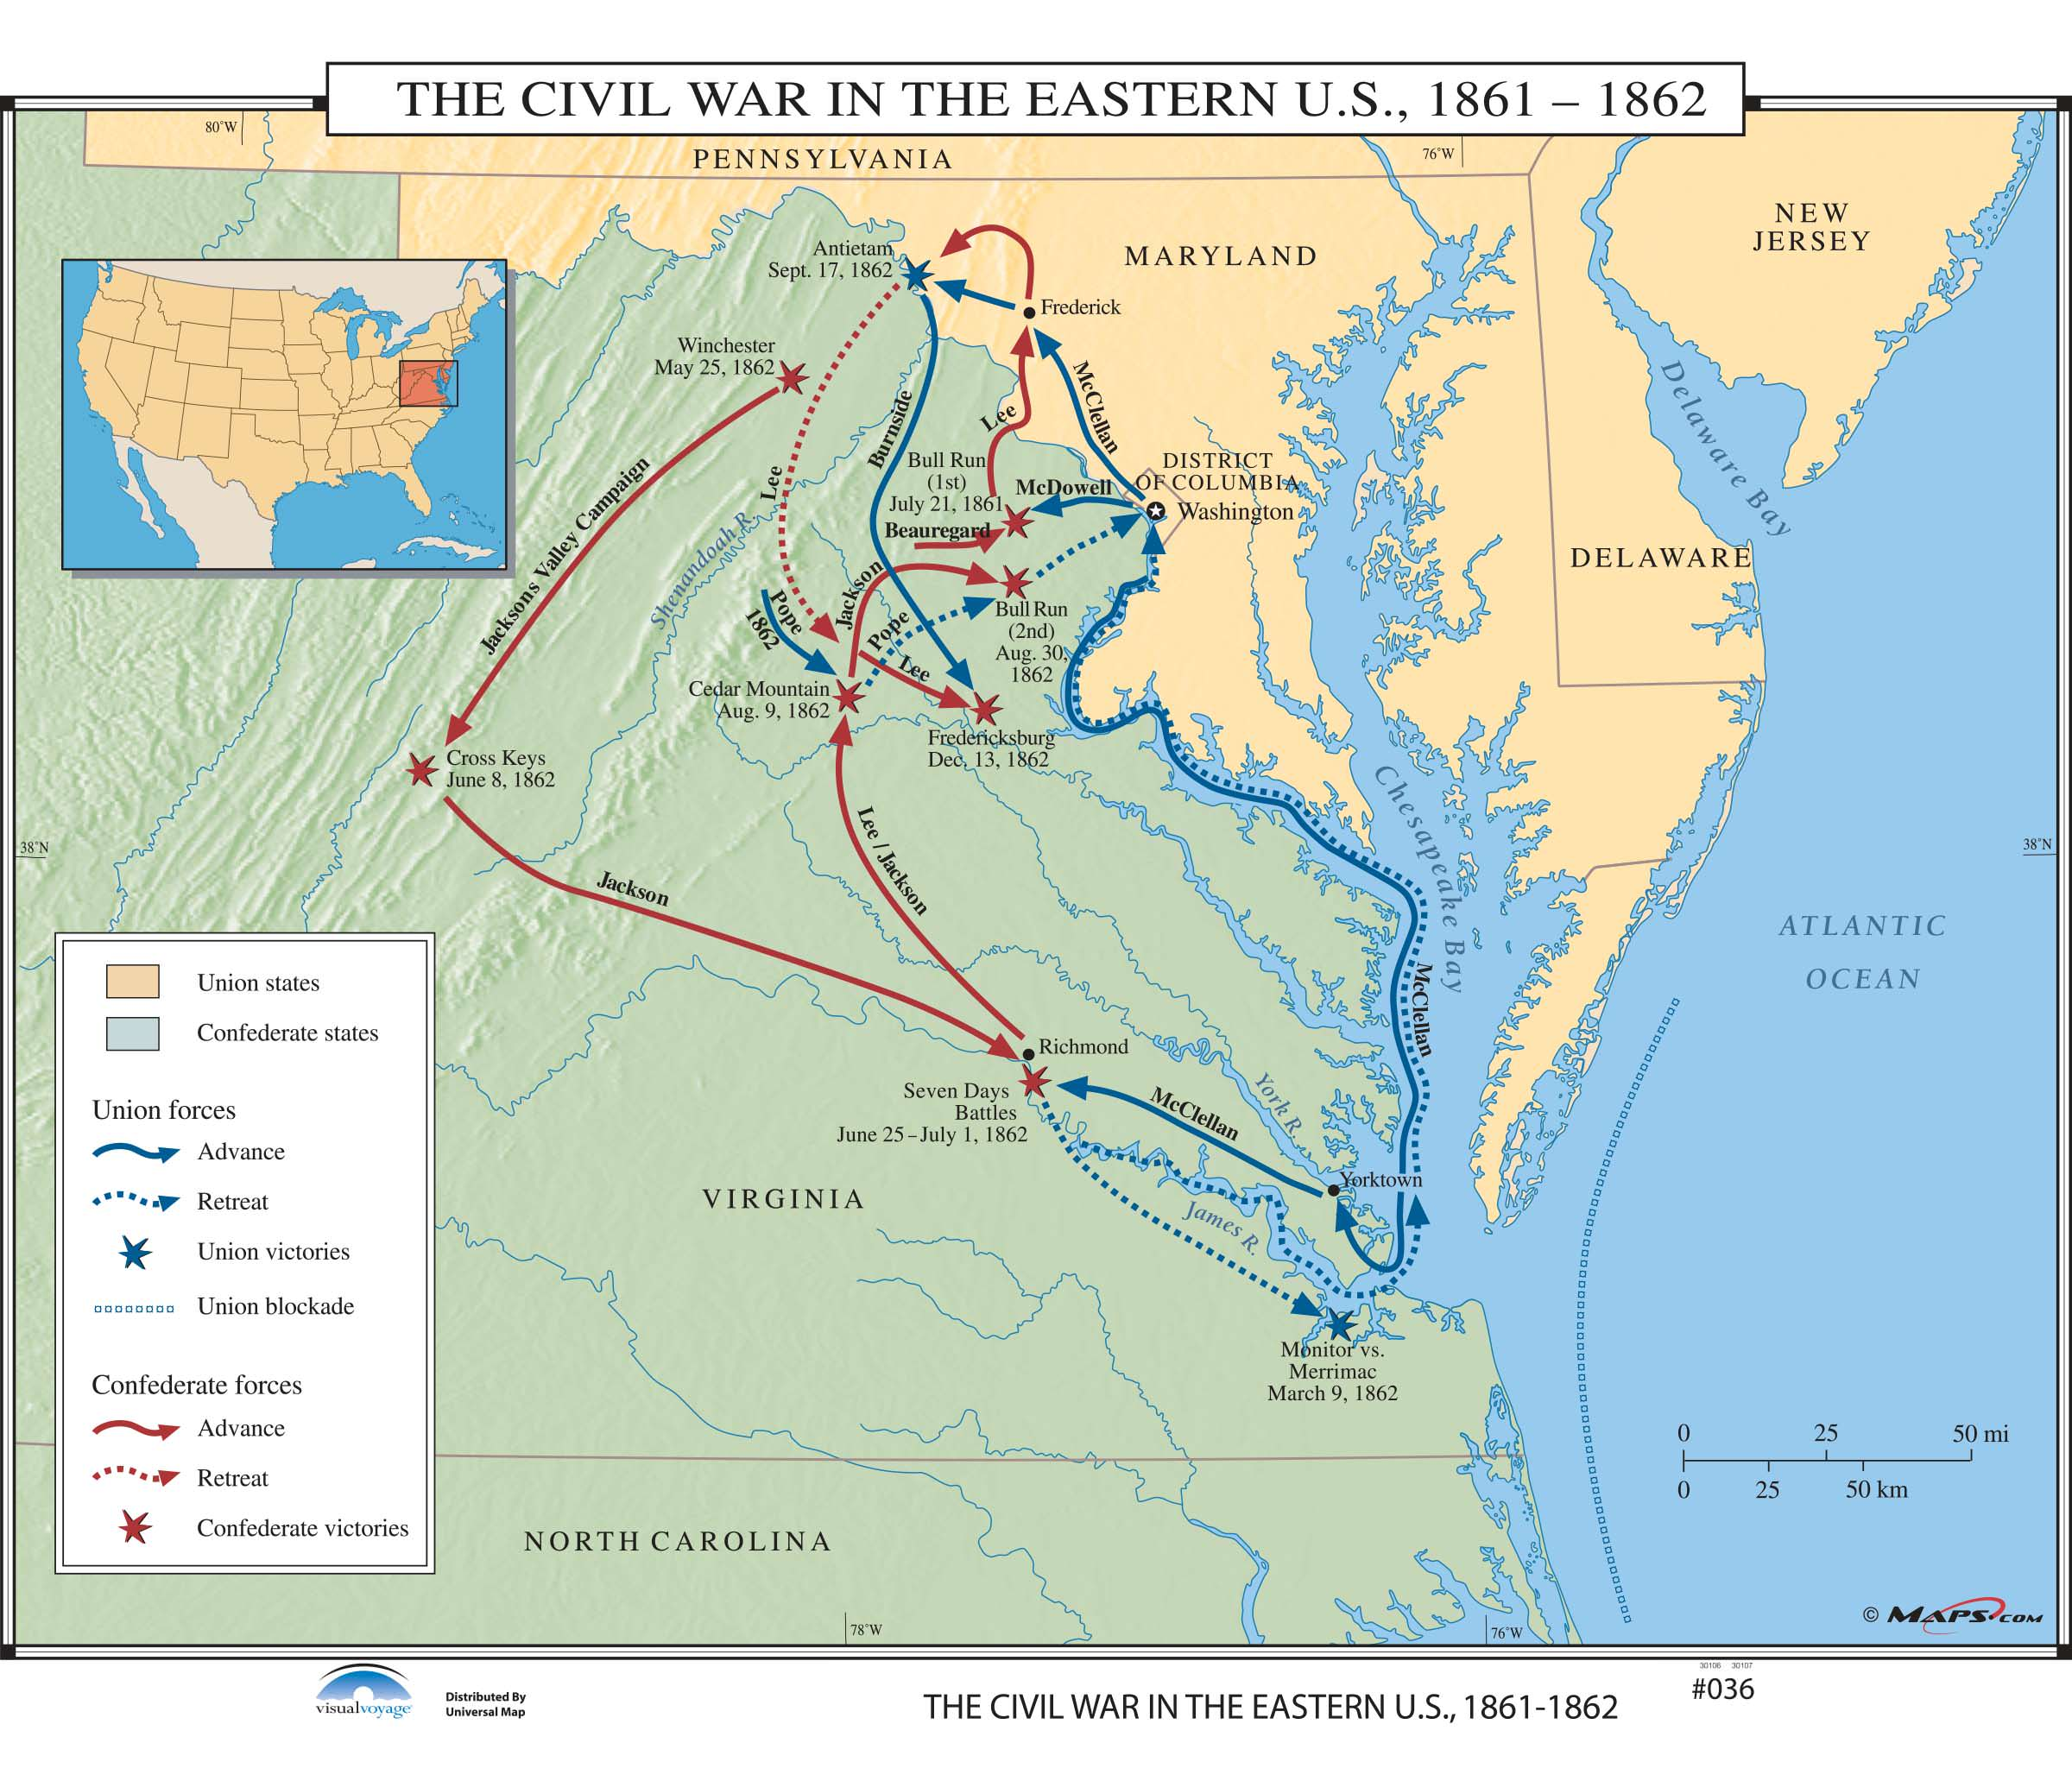 036 the civil war in the eastern us 1861 1862